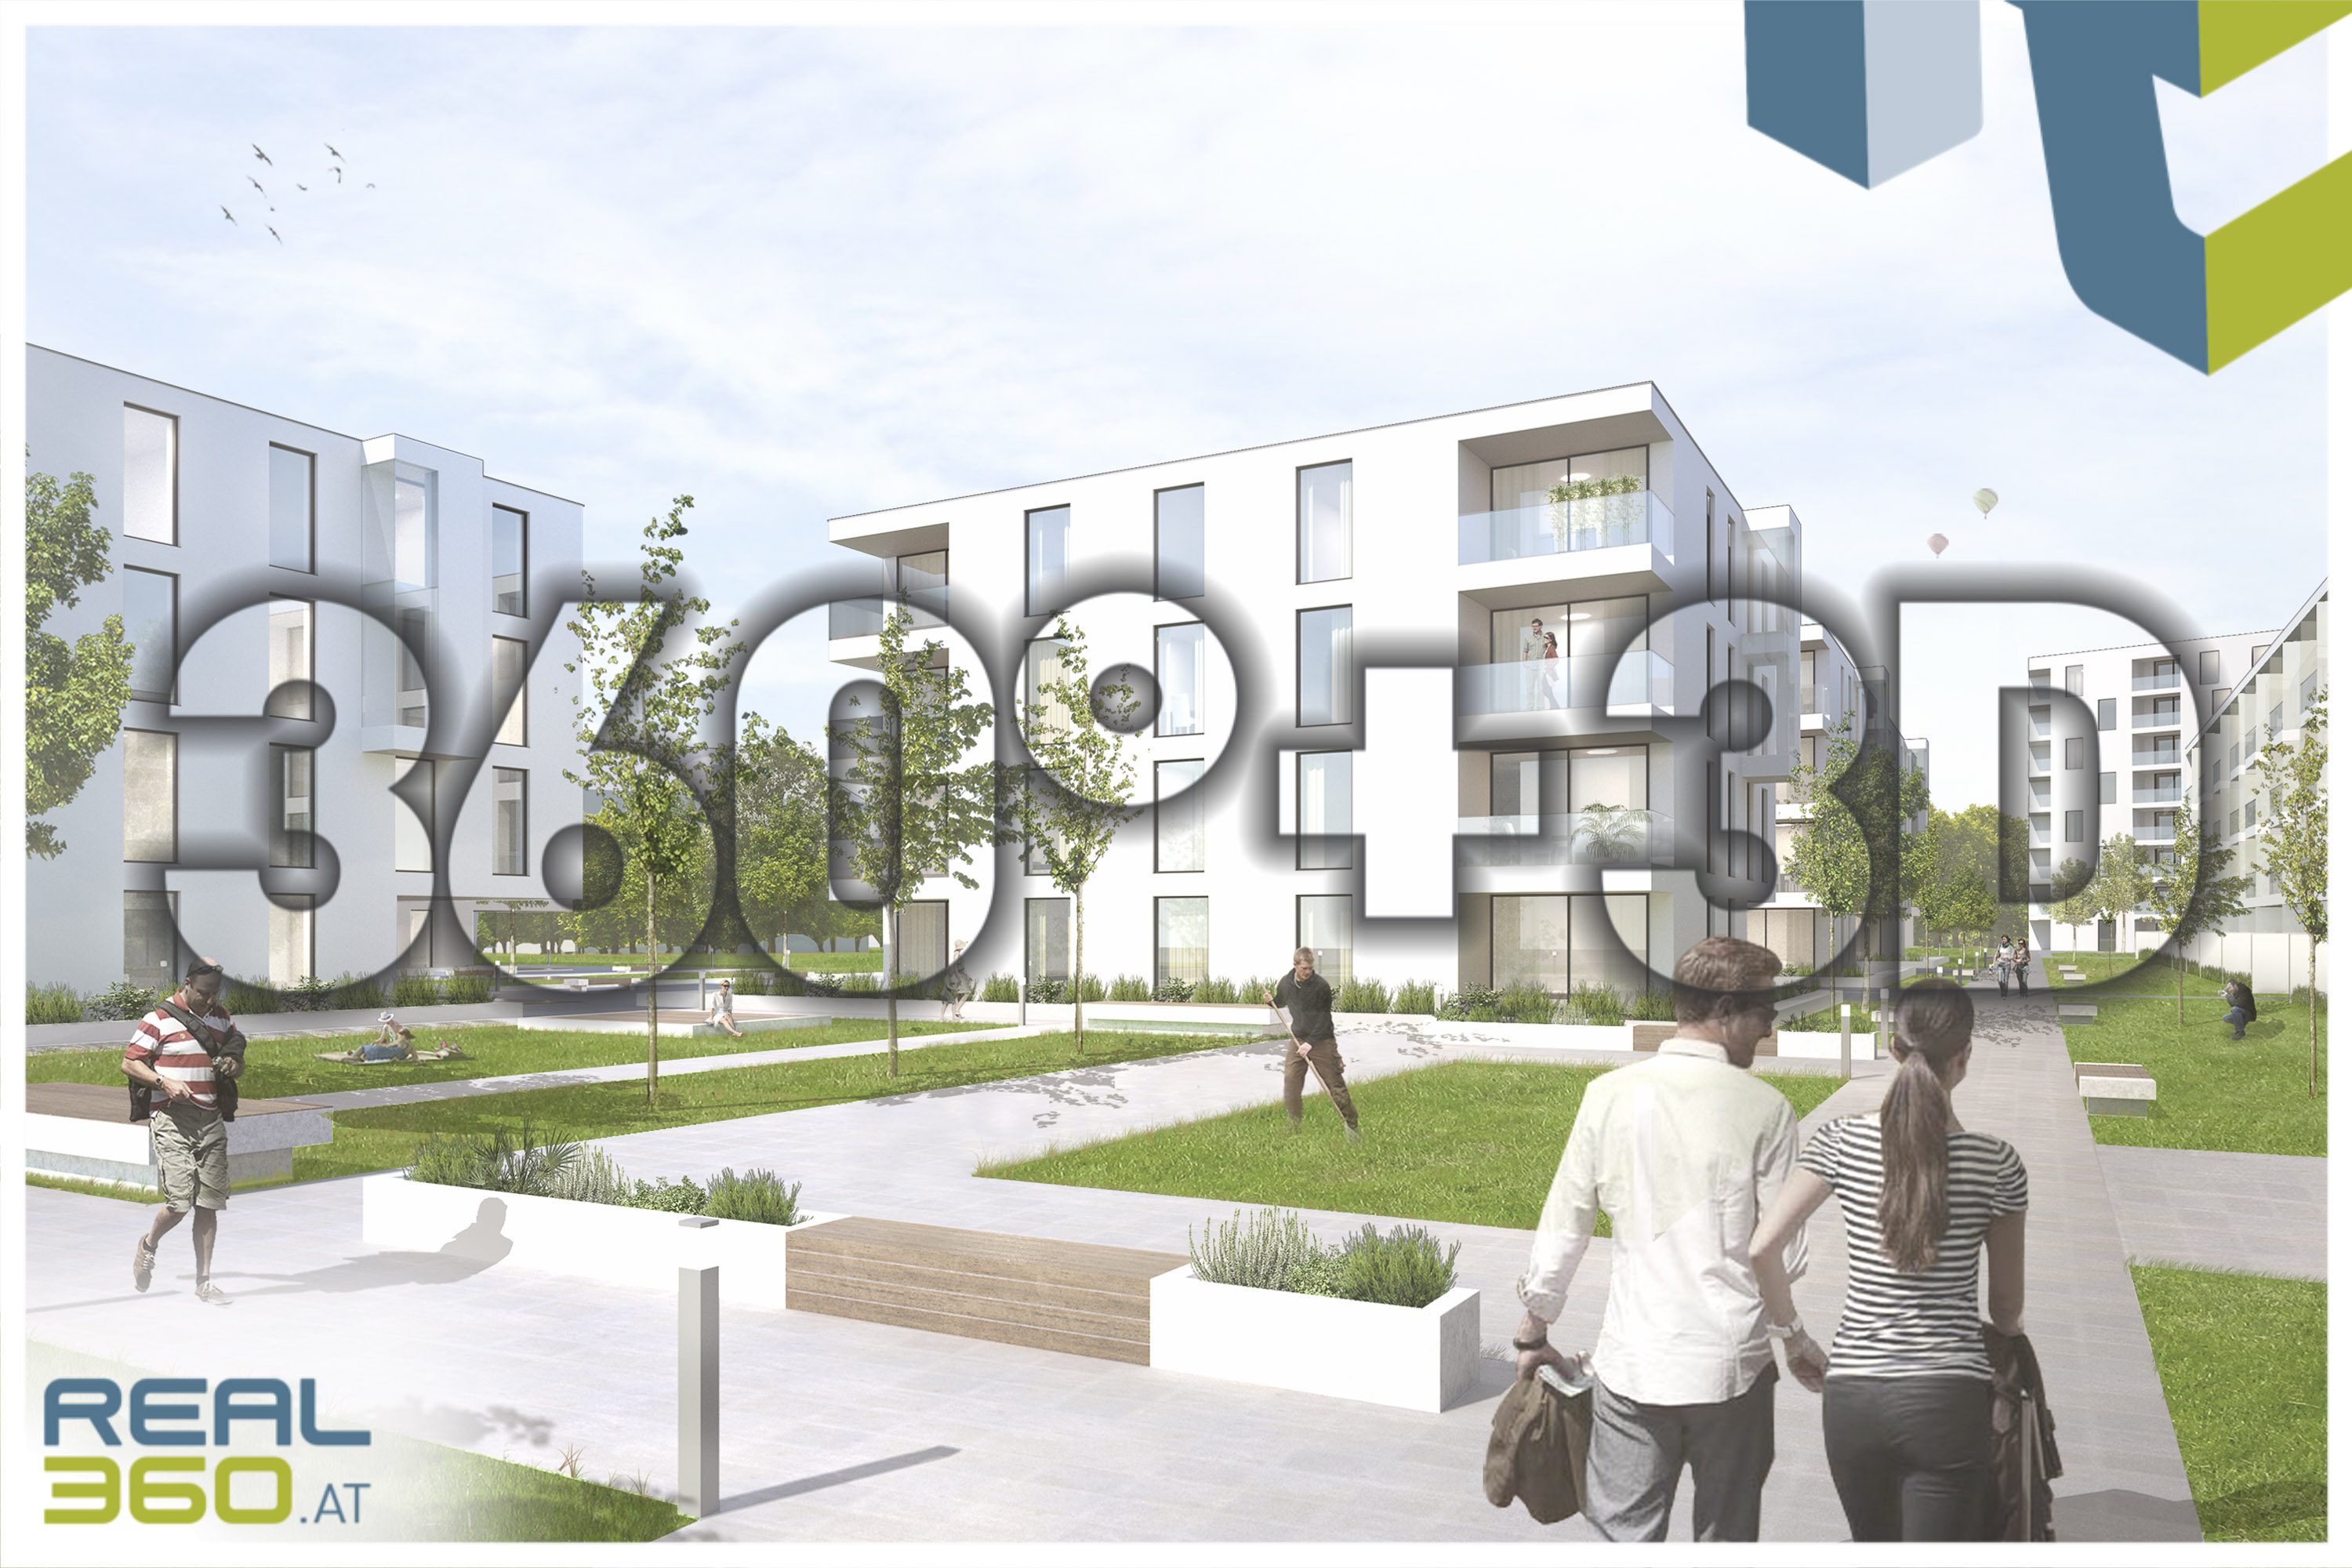 Projekte | REAL 360 Immobilien